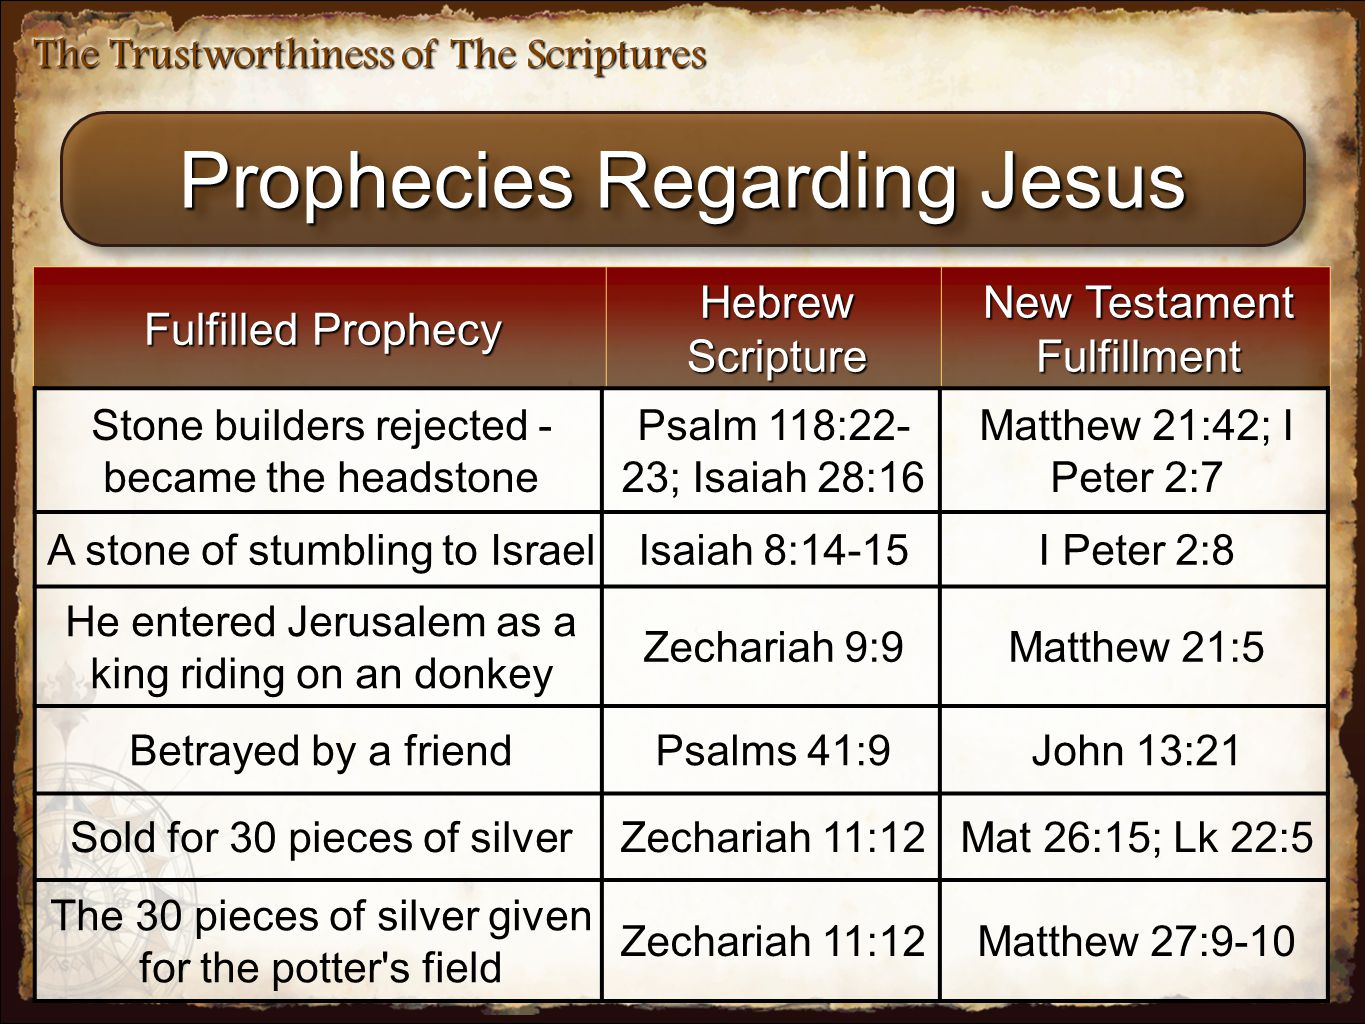 The Trustworthiness of The Scriptures Prophecies Regarding Jesus Fulfilled Prophecy Hebrew Scripture New Testament Fulfillment Stone builders rejected - became the headstone Psalm 118:22- 23; Isaiah 28:16 Matthew 21:42; I Peter 2:7 A stone of stumbling to IsraelIsaiah 8:14-15I Peter 2:8 He entered Jerusalem as a king riding on an donkey Zechariah 9:9Matthew 21:5 Betrayed by a friendPsalms 41:9John 13:21 Sold for 30 pieces of silverZechariah 11:12Mat 26:15; Lk 22:5 The 30 pieces of silver given for the potter s field Zechariah 11:12Matthew 27:9-10